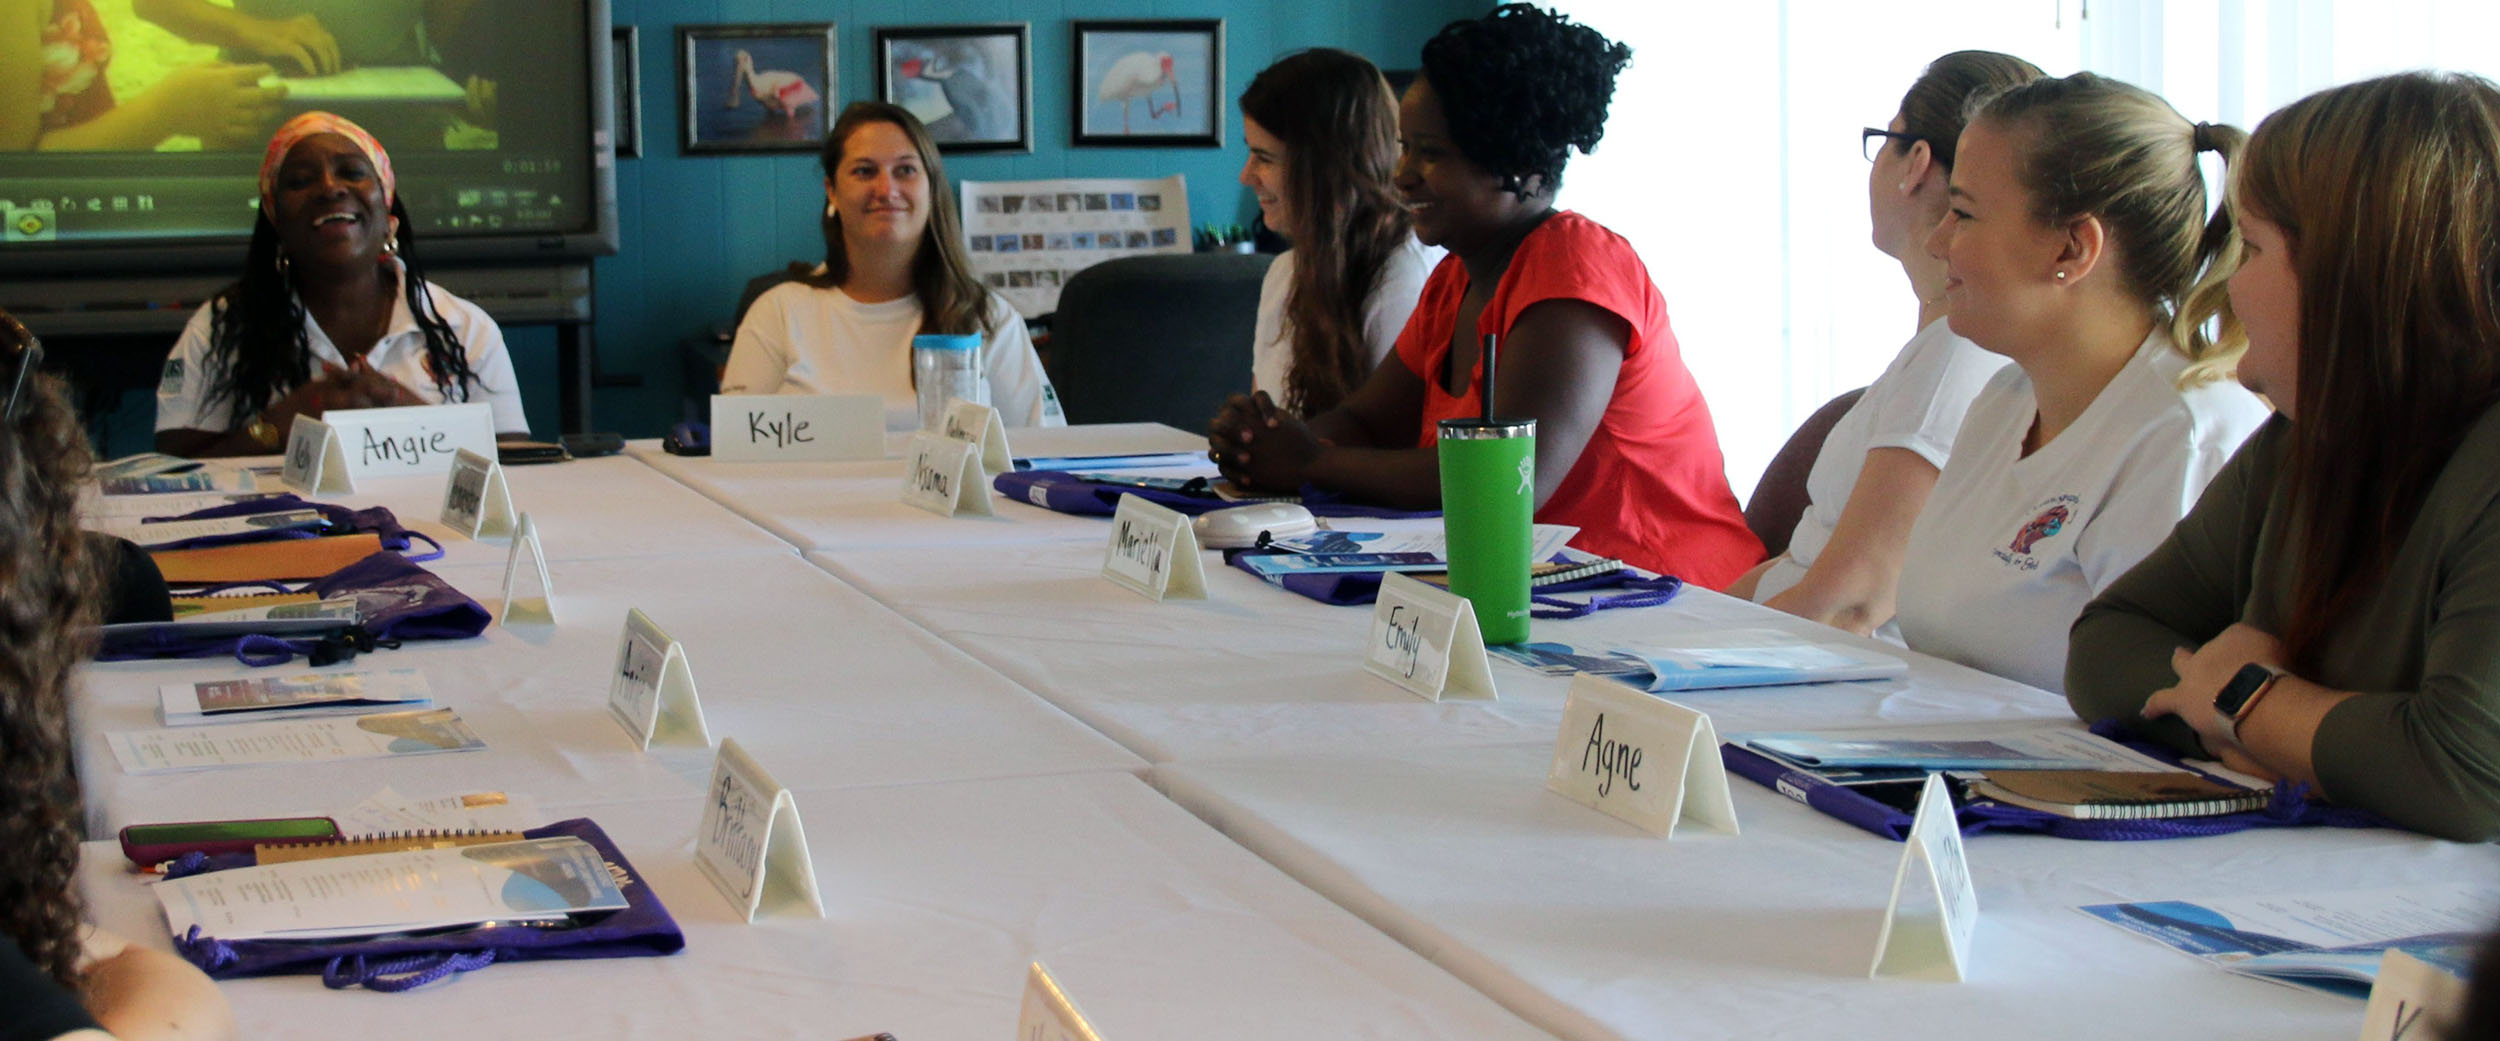 "Dr. Angela Lodge – Angie --facilitated the visit to Clam Bayou, home base for the USF CMS Oceanography Camp for Girls. The visit, held November 5, 2019, was featured as part of the US State Department's ""Hidden No More"" Women in STEM initiative."